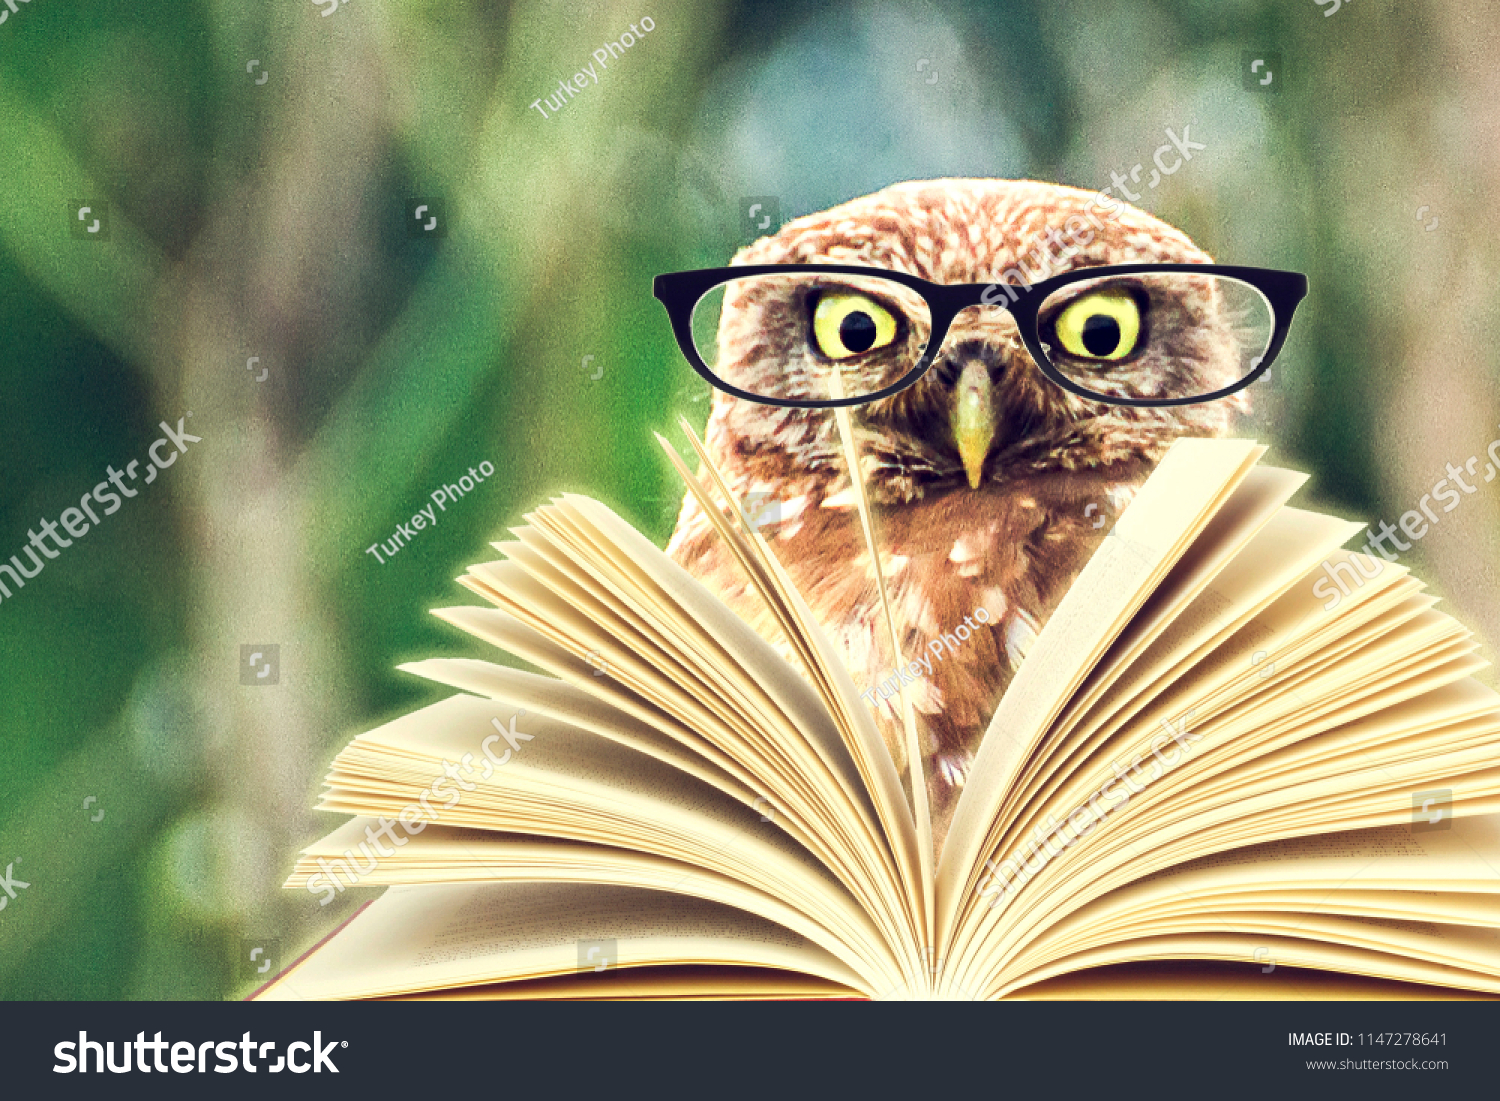 stock-photo-an-owl-animal-with-glasses-i